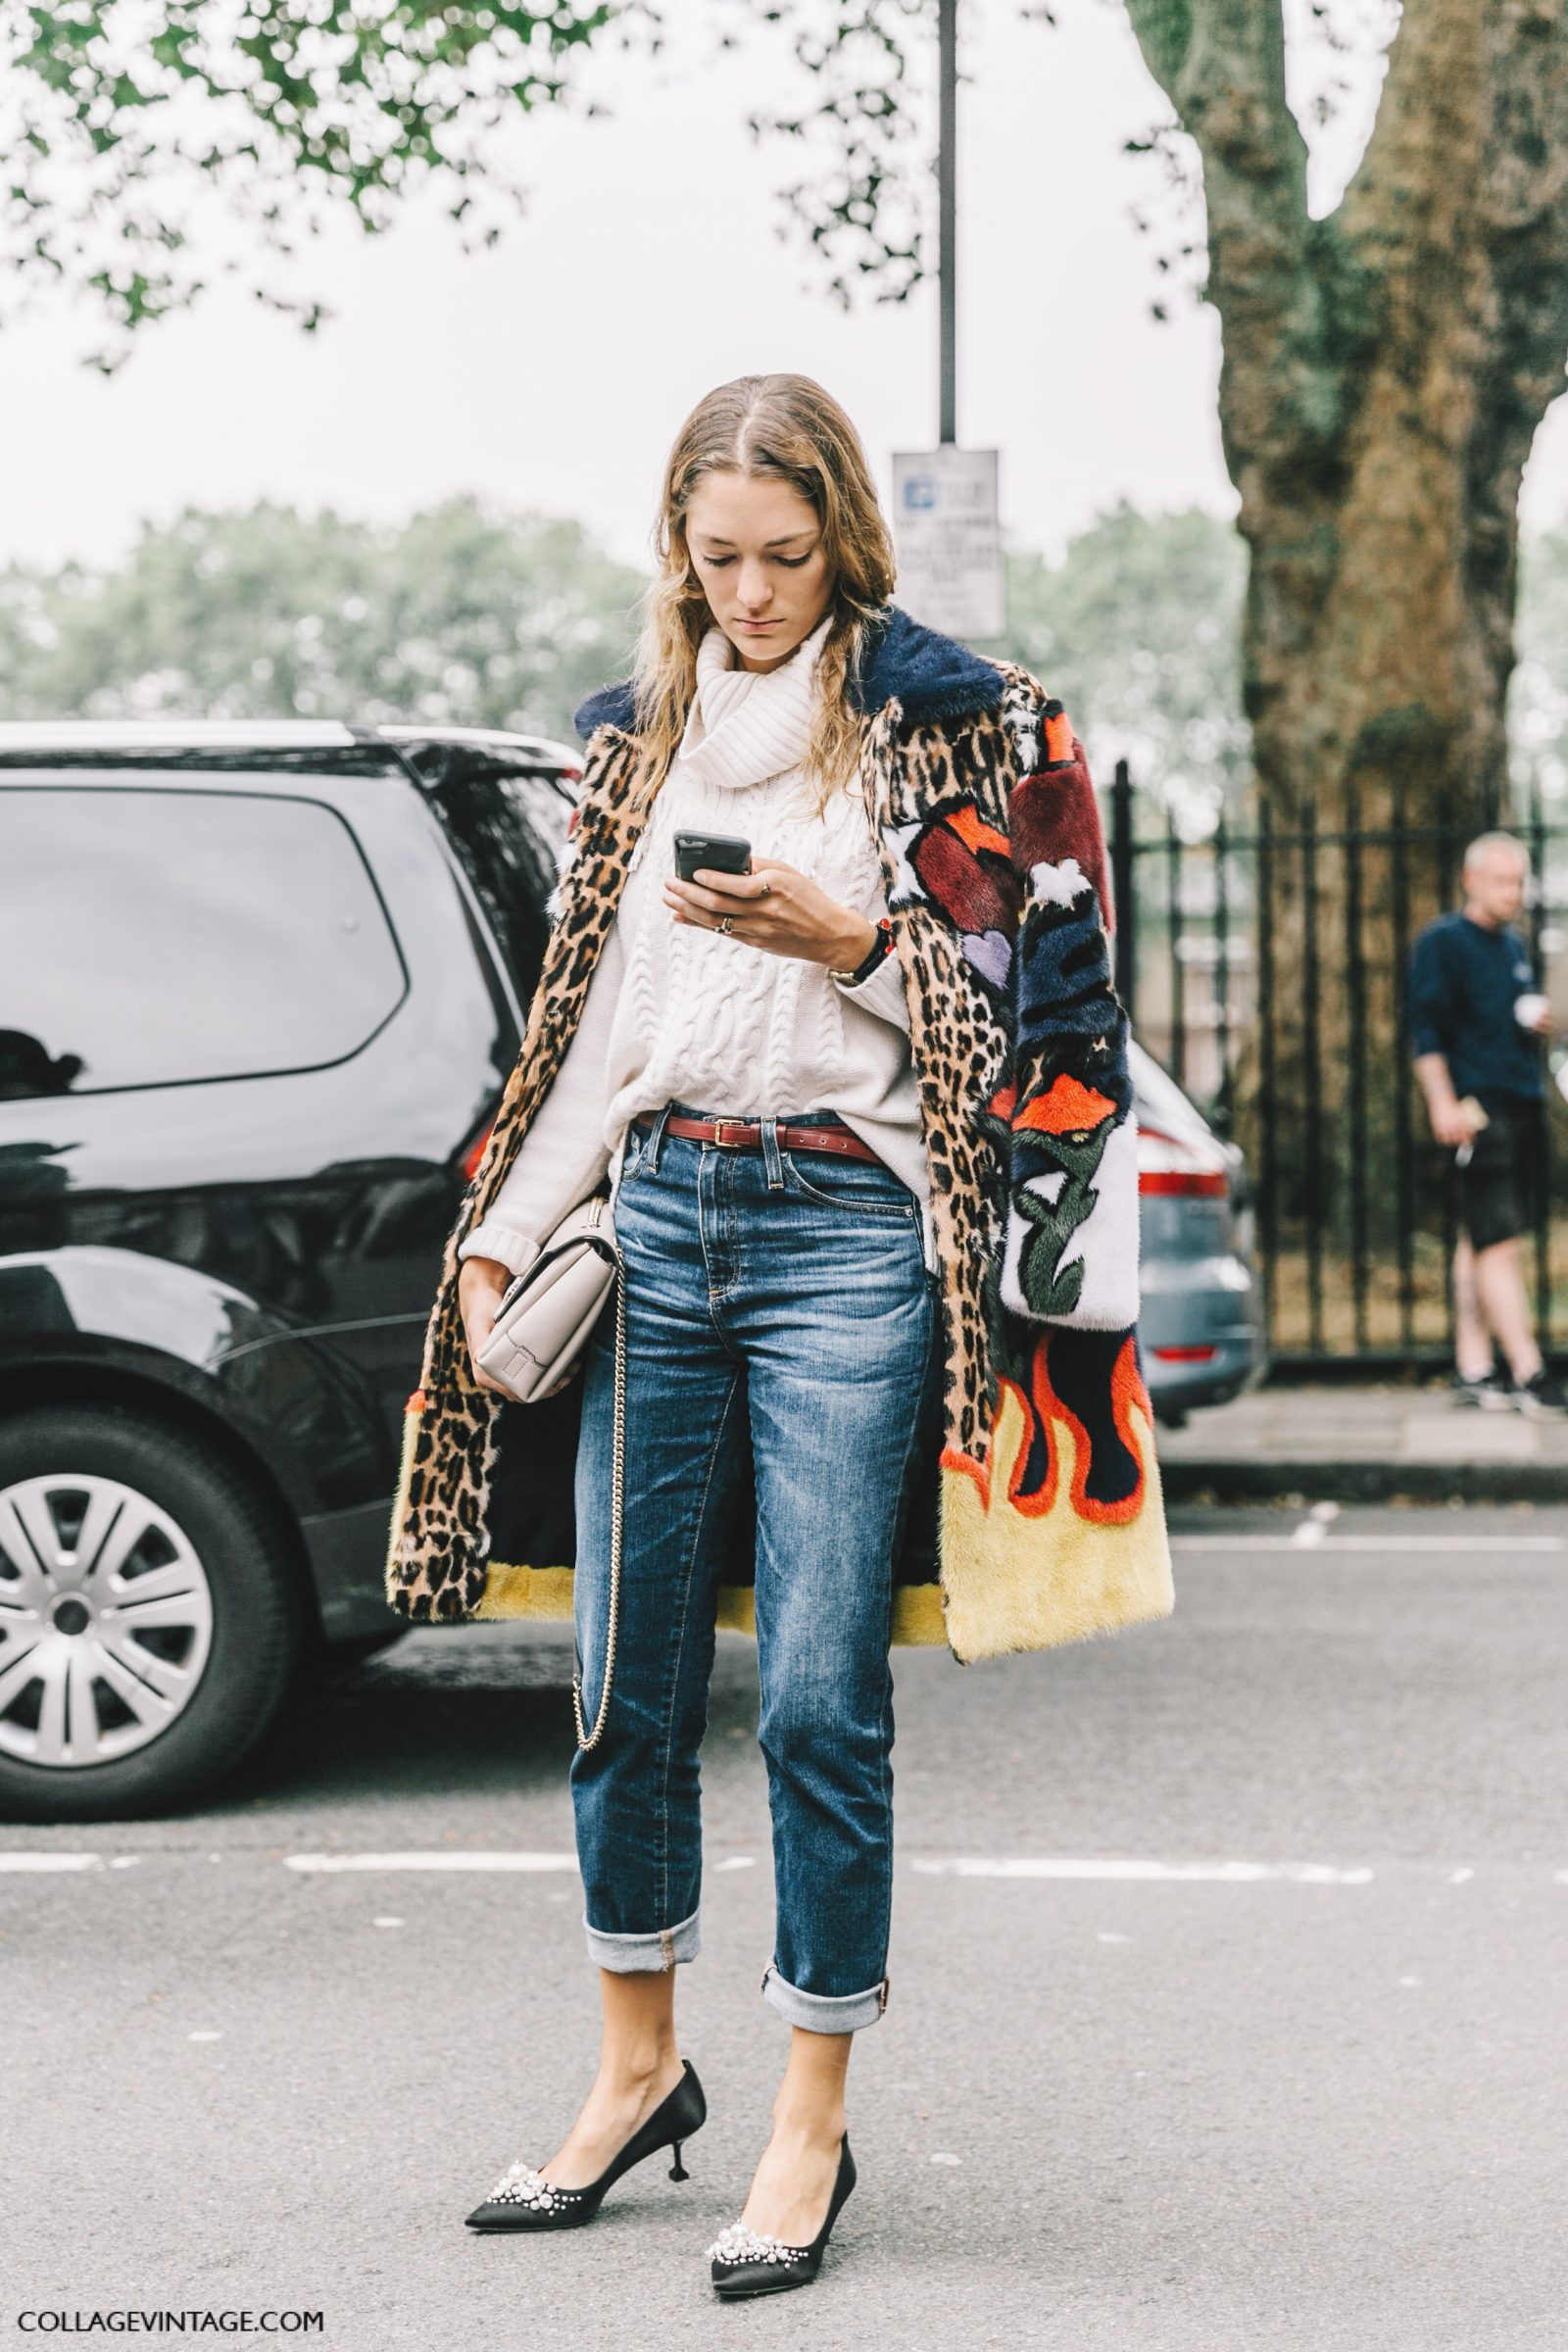 lfw-london_fashion_week_ss17-street_style-outfits-collage_vintage-vintage-topshop_unique-anya-mulberry-preen-17